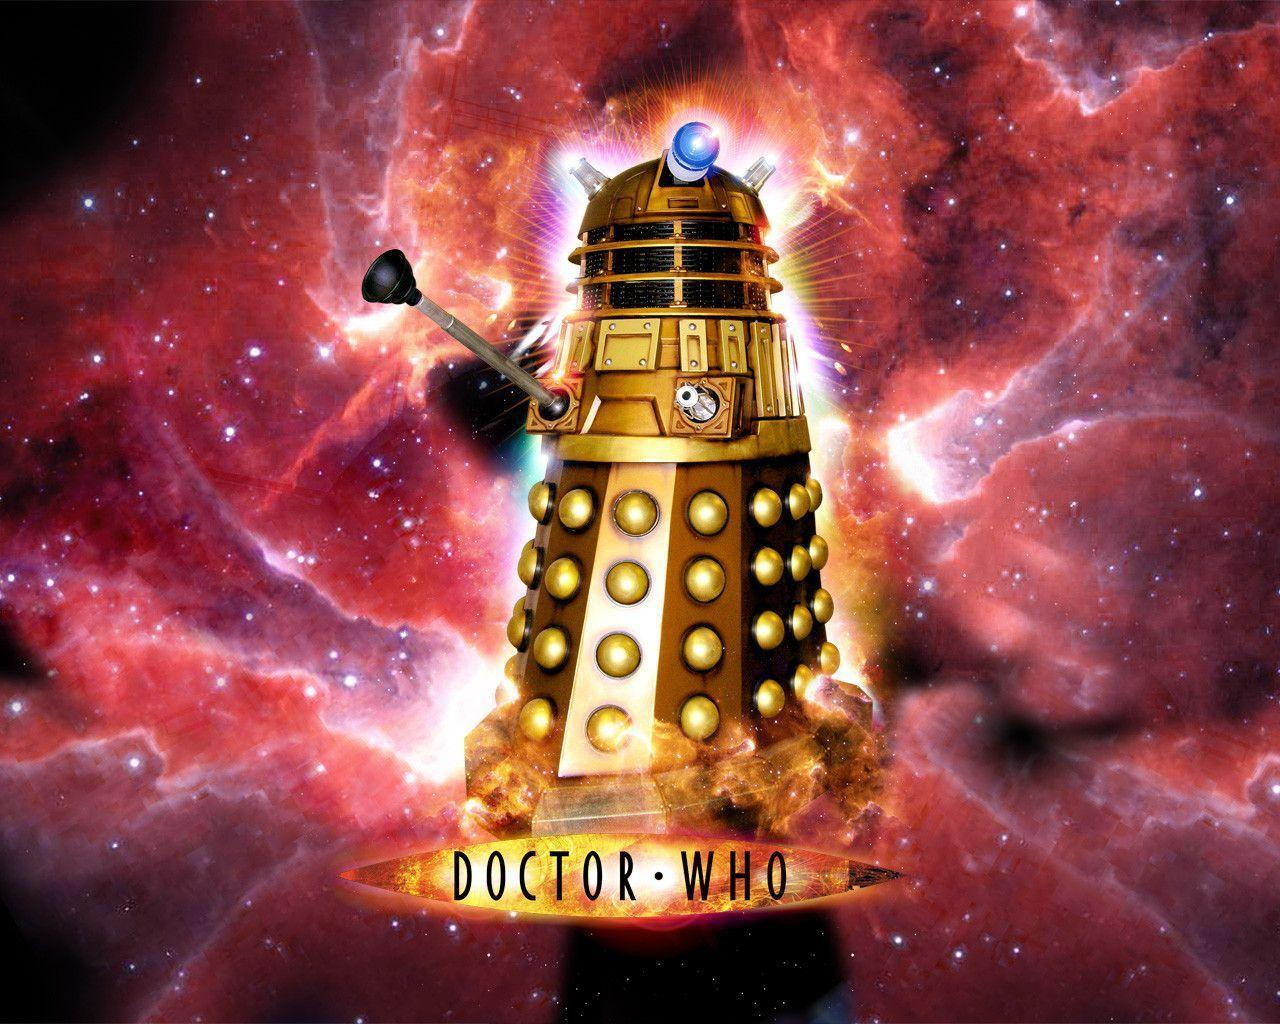 Wallpapers For Doctor Who Wallpaper Dalek Exterminate